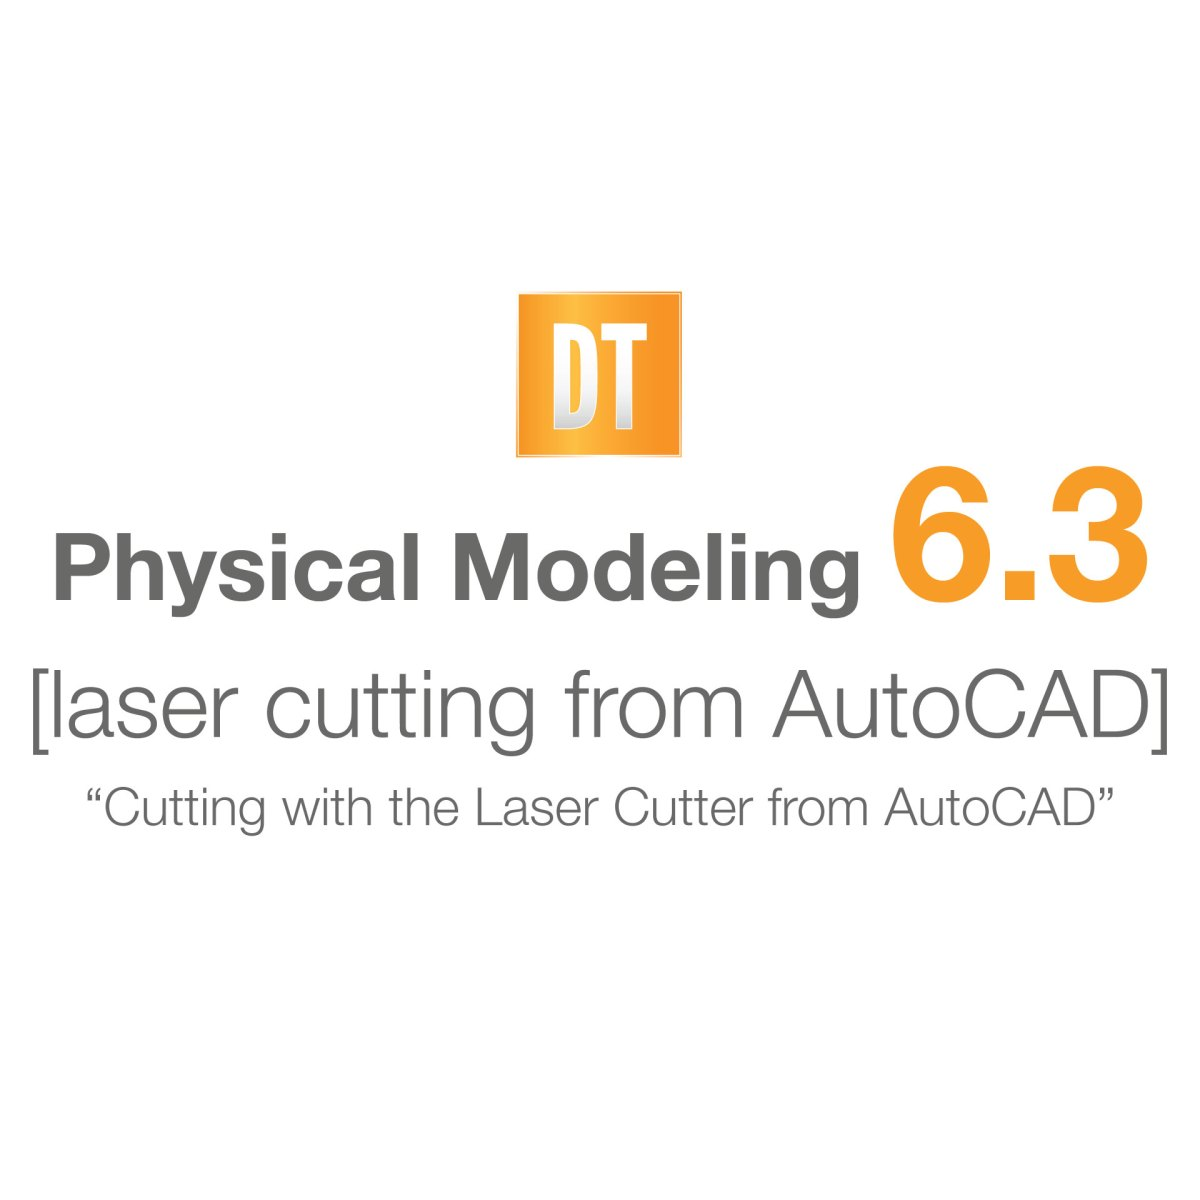 Physical Modeling 6 3 [laser cutting from AutoCAD] | Digital Tools